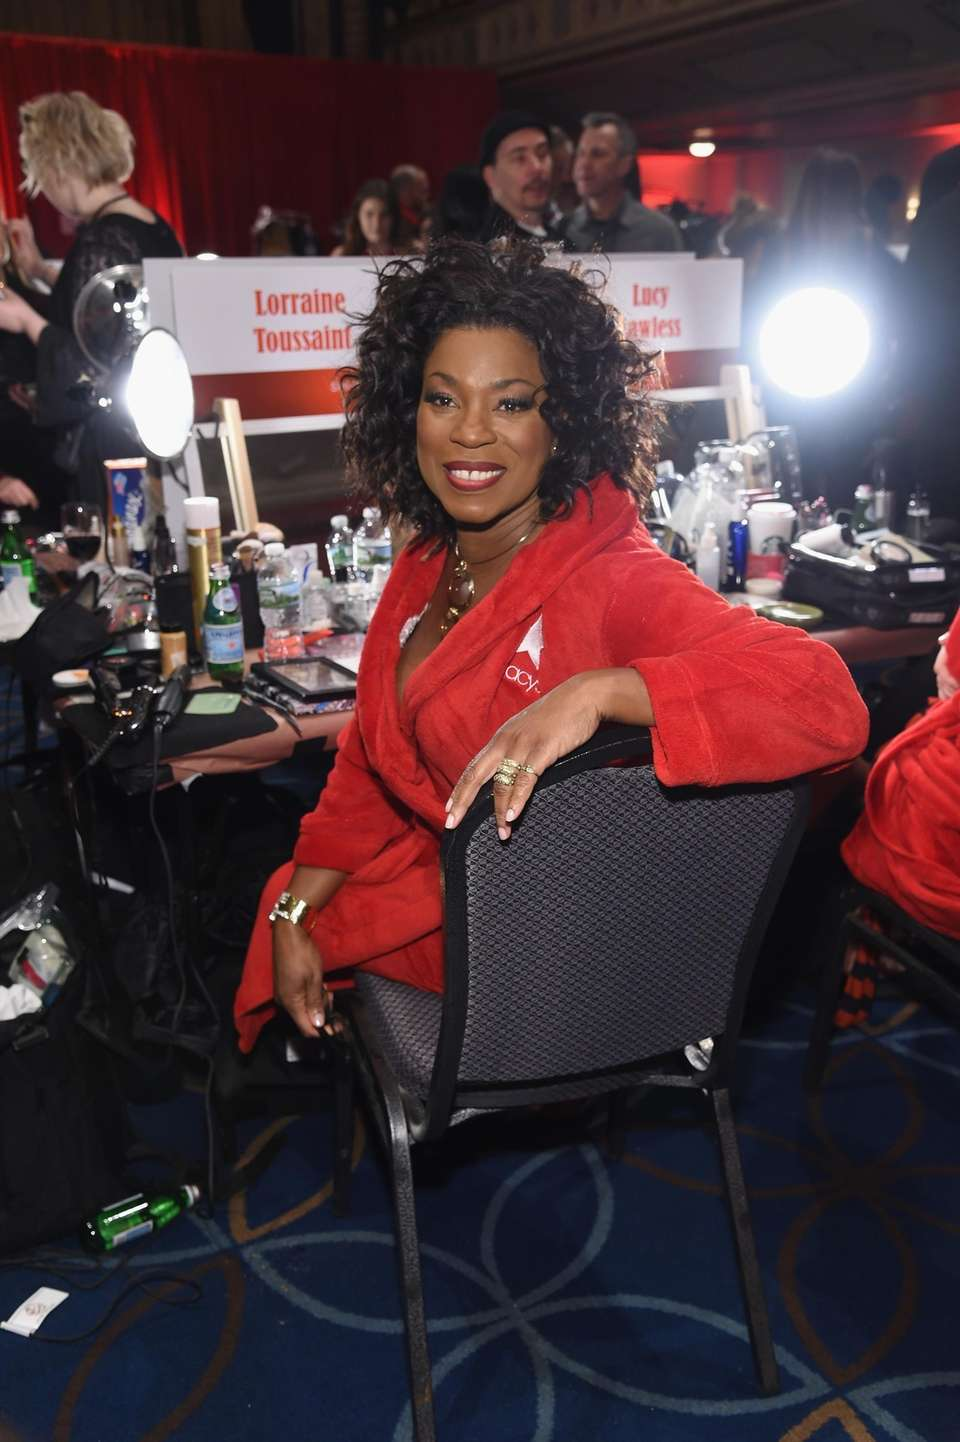 Lorraine Toussaint prepares backstage at the American Heart